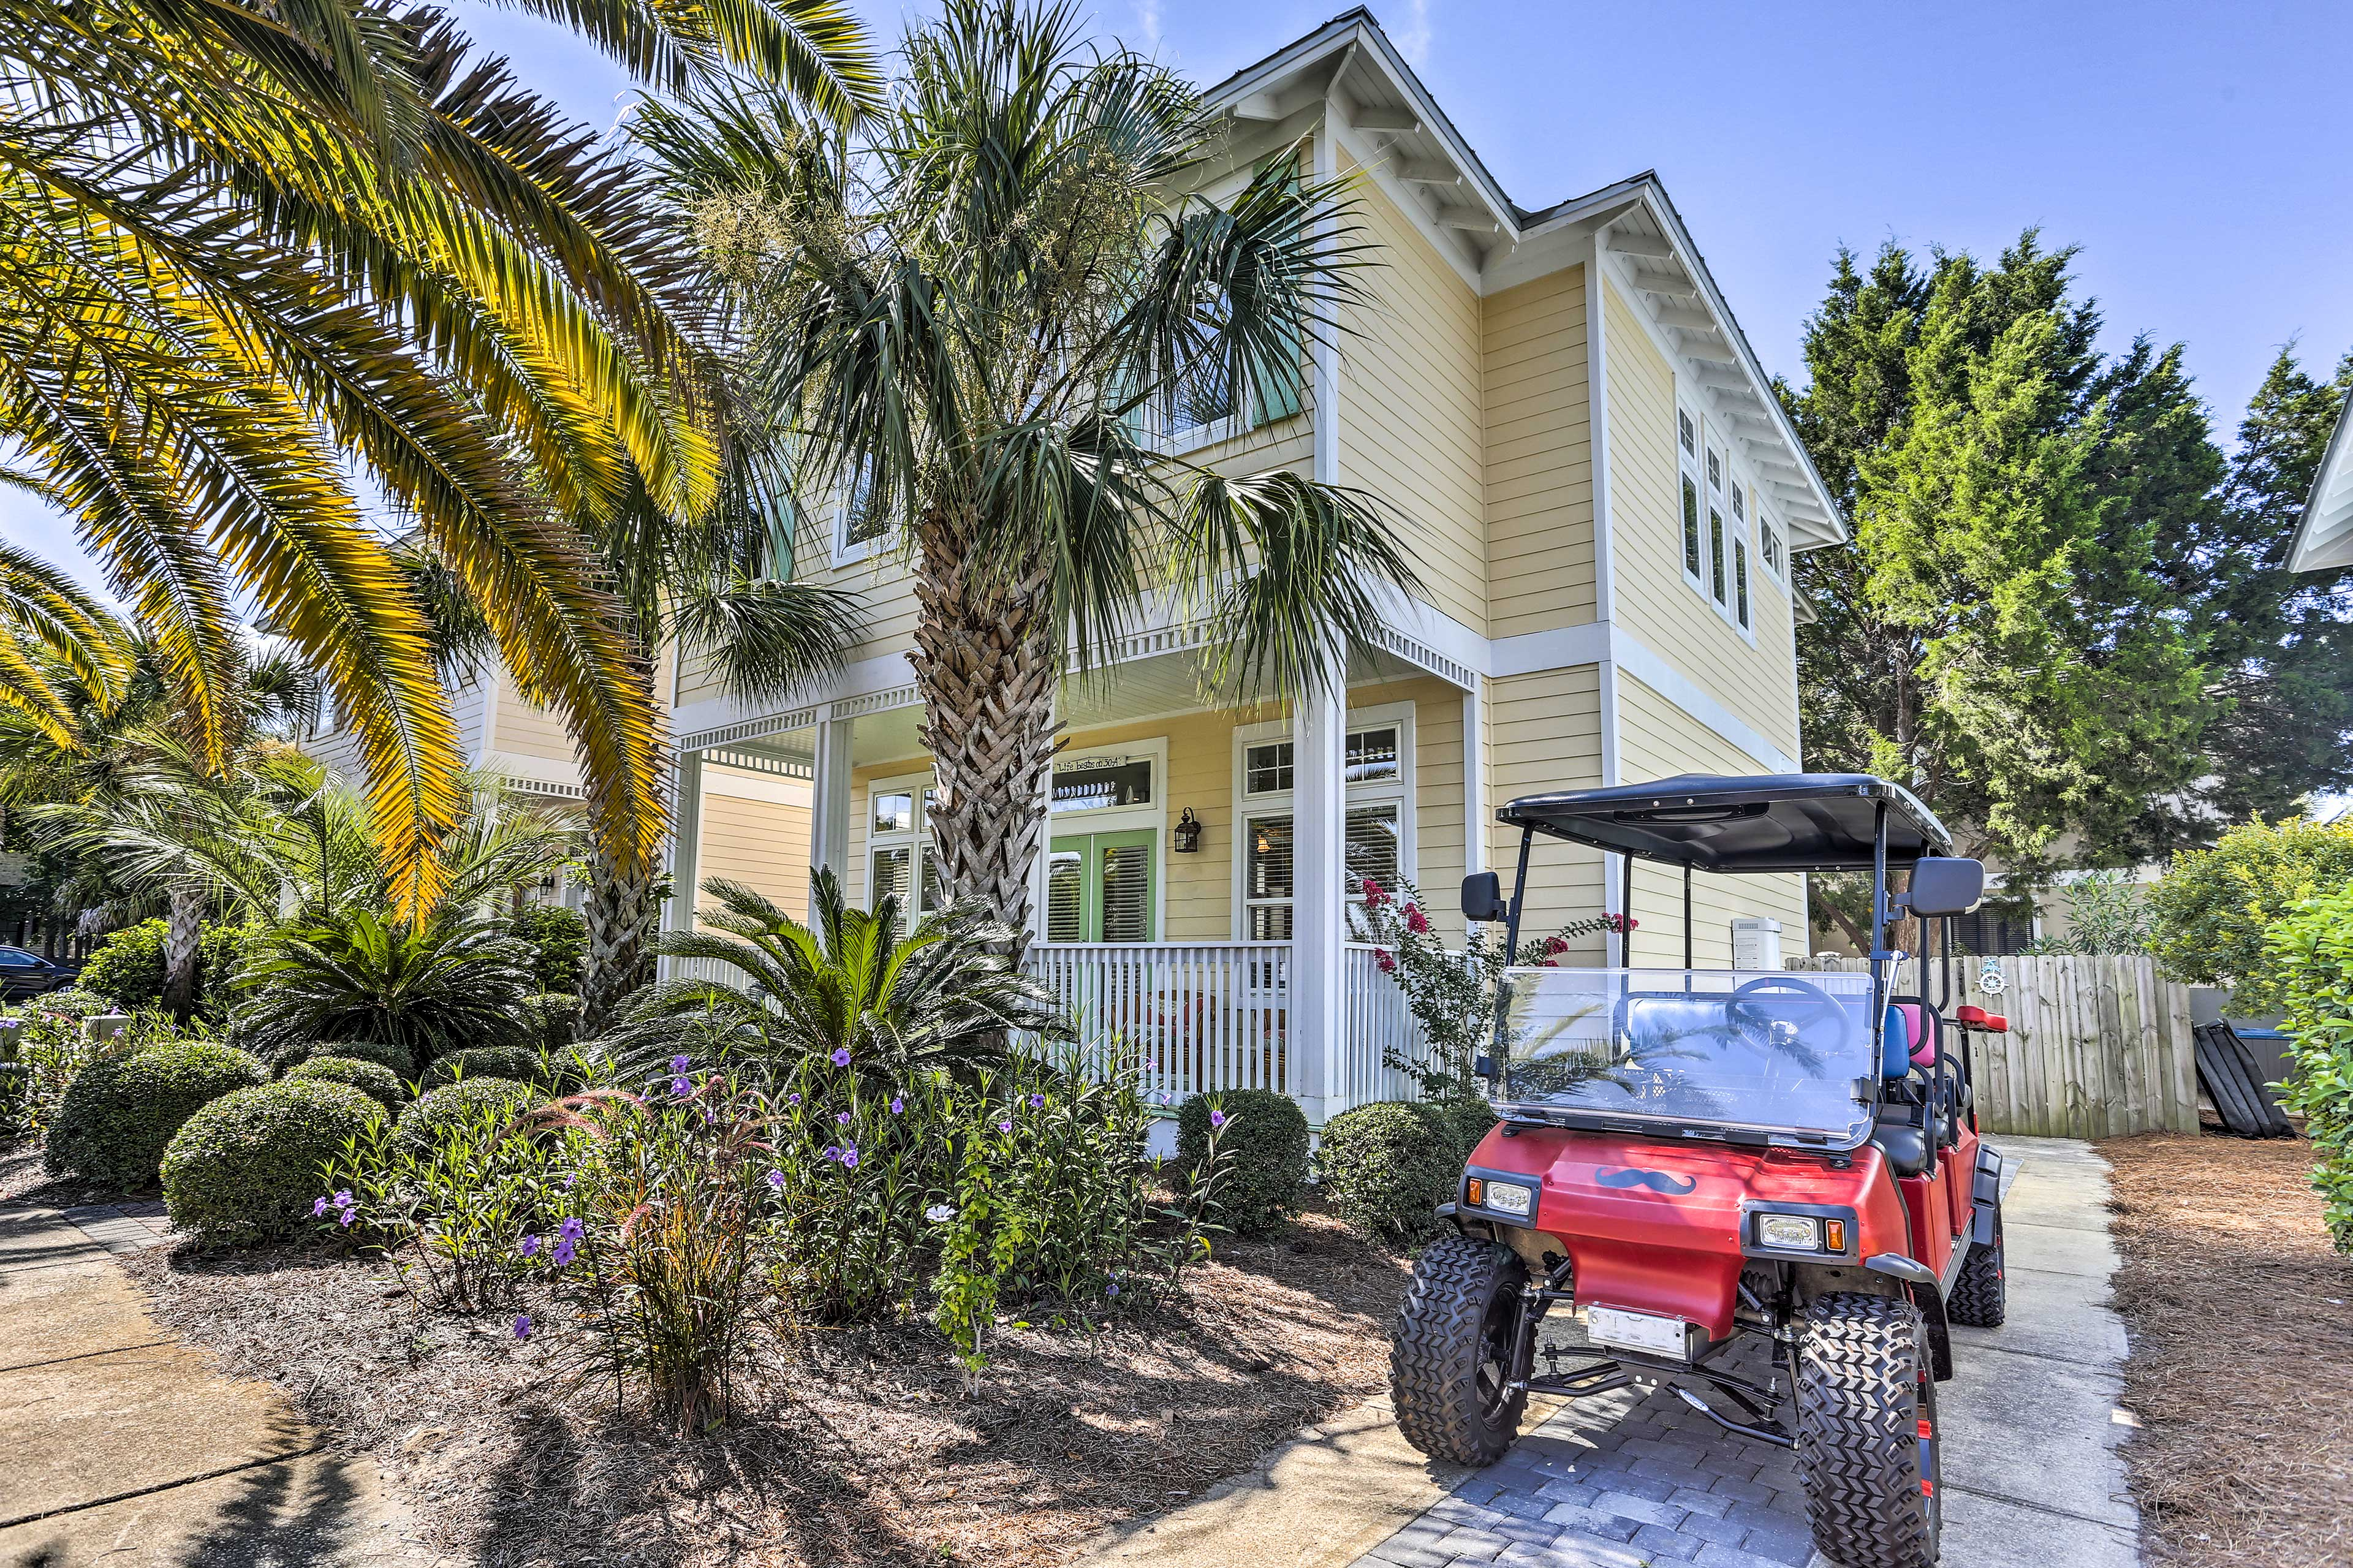 Drive around in a golf cart when you book this Santa Rosa Beach vacation rental.